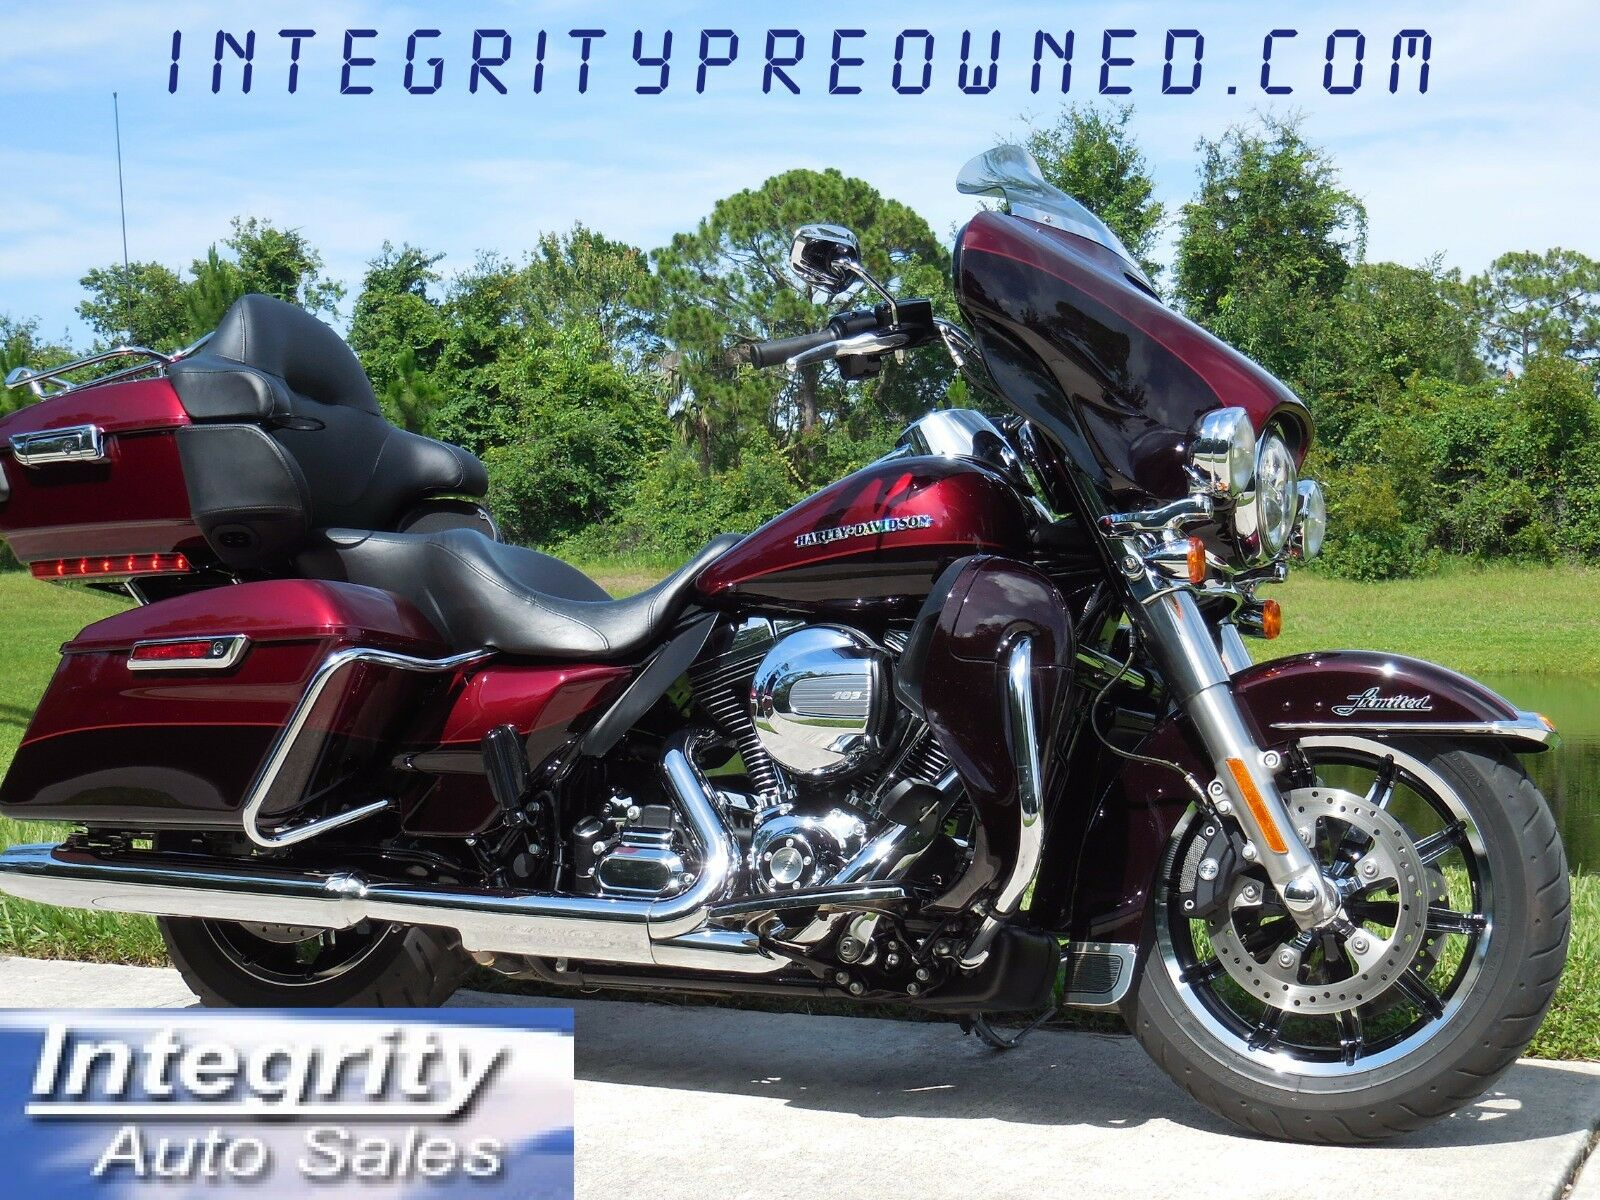 2015 Harley Davidson FLHTKL Limited LOW Only 7700 Miles Like New condition!!!!!!